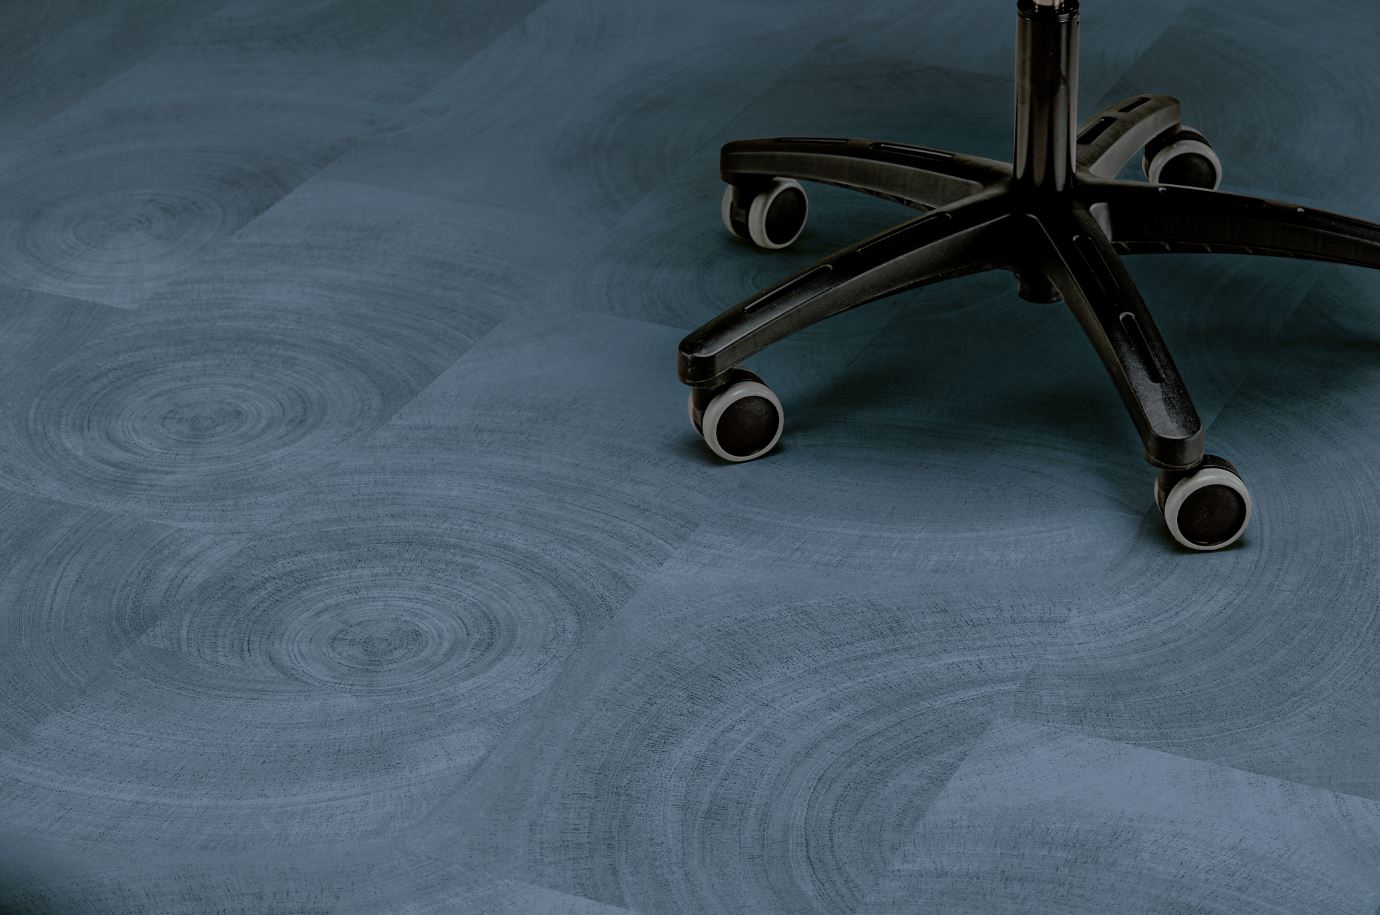 Rolling Chair Over LVT Floor